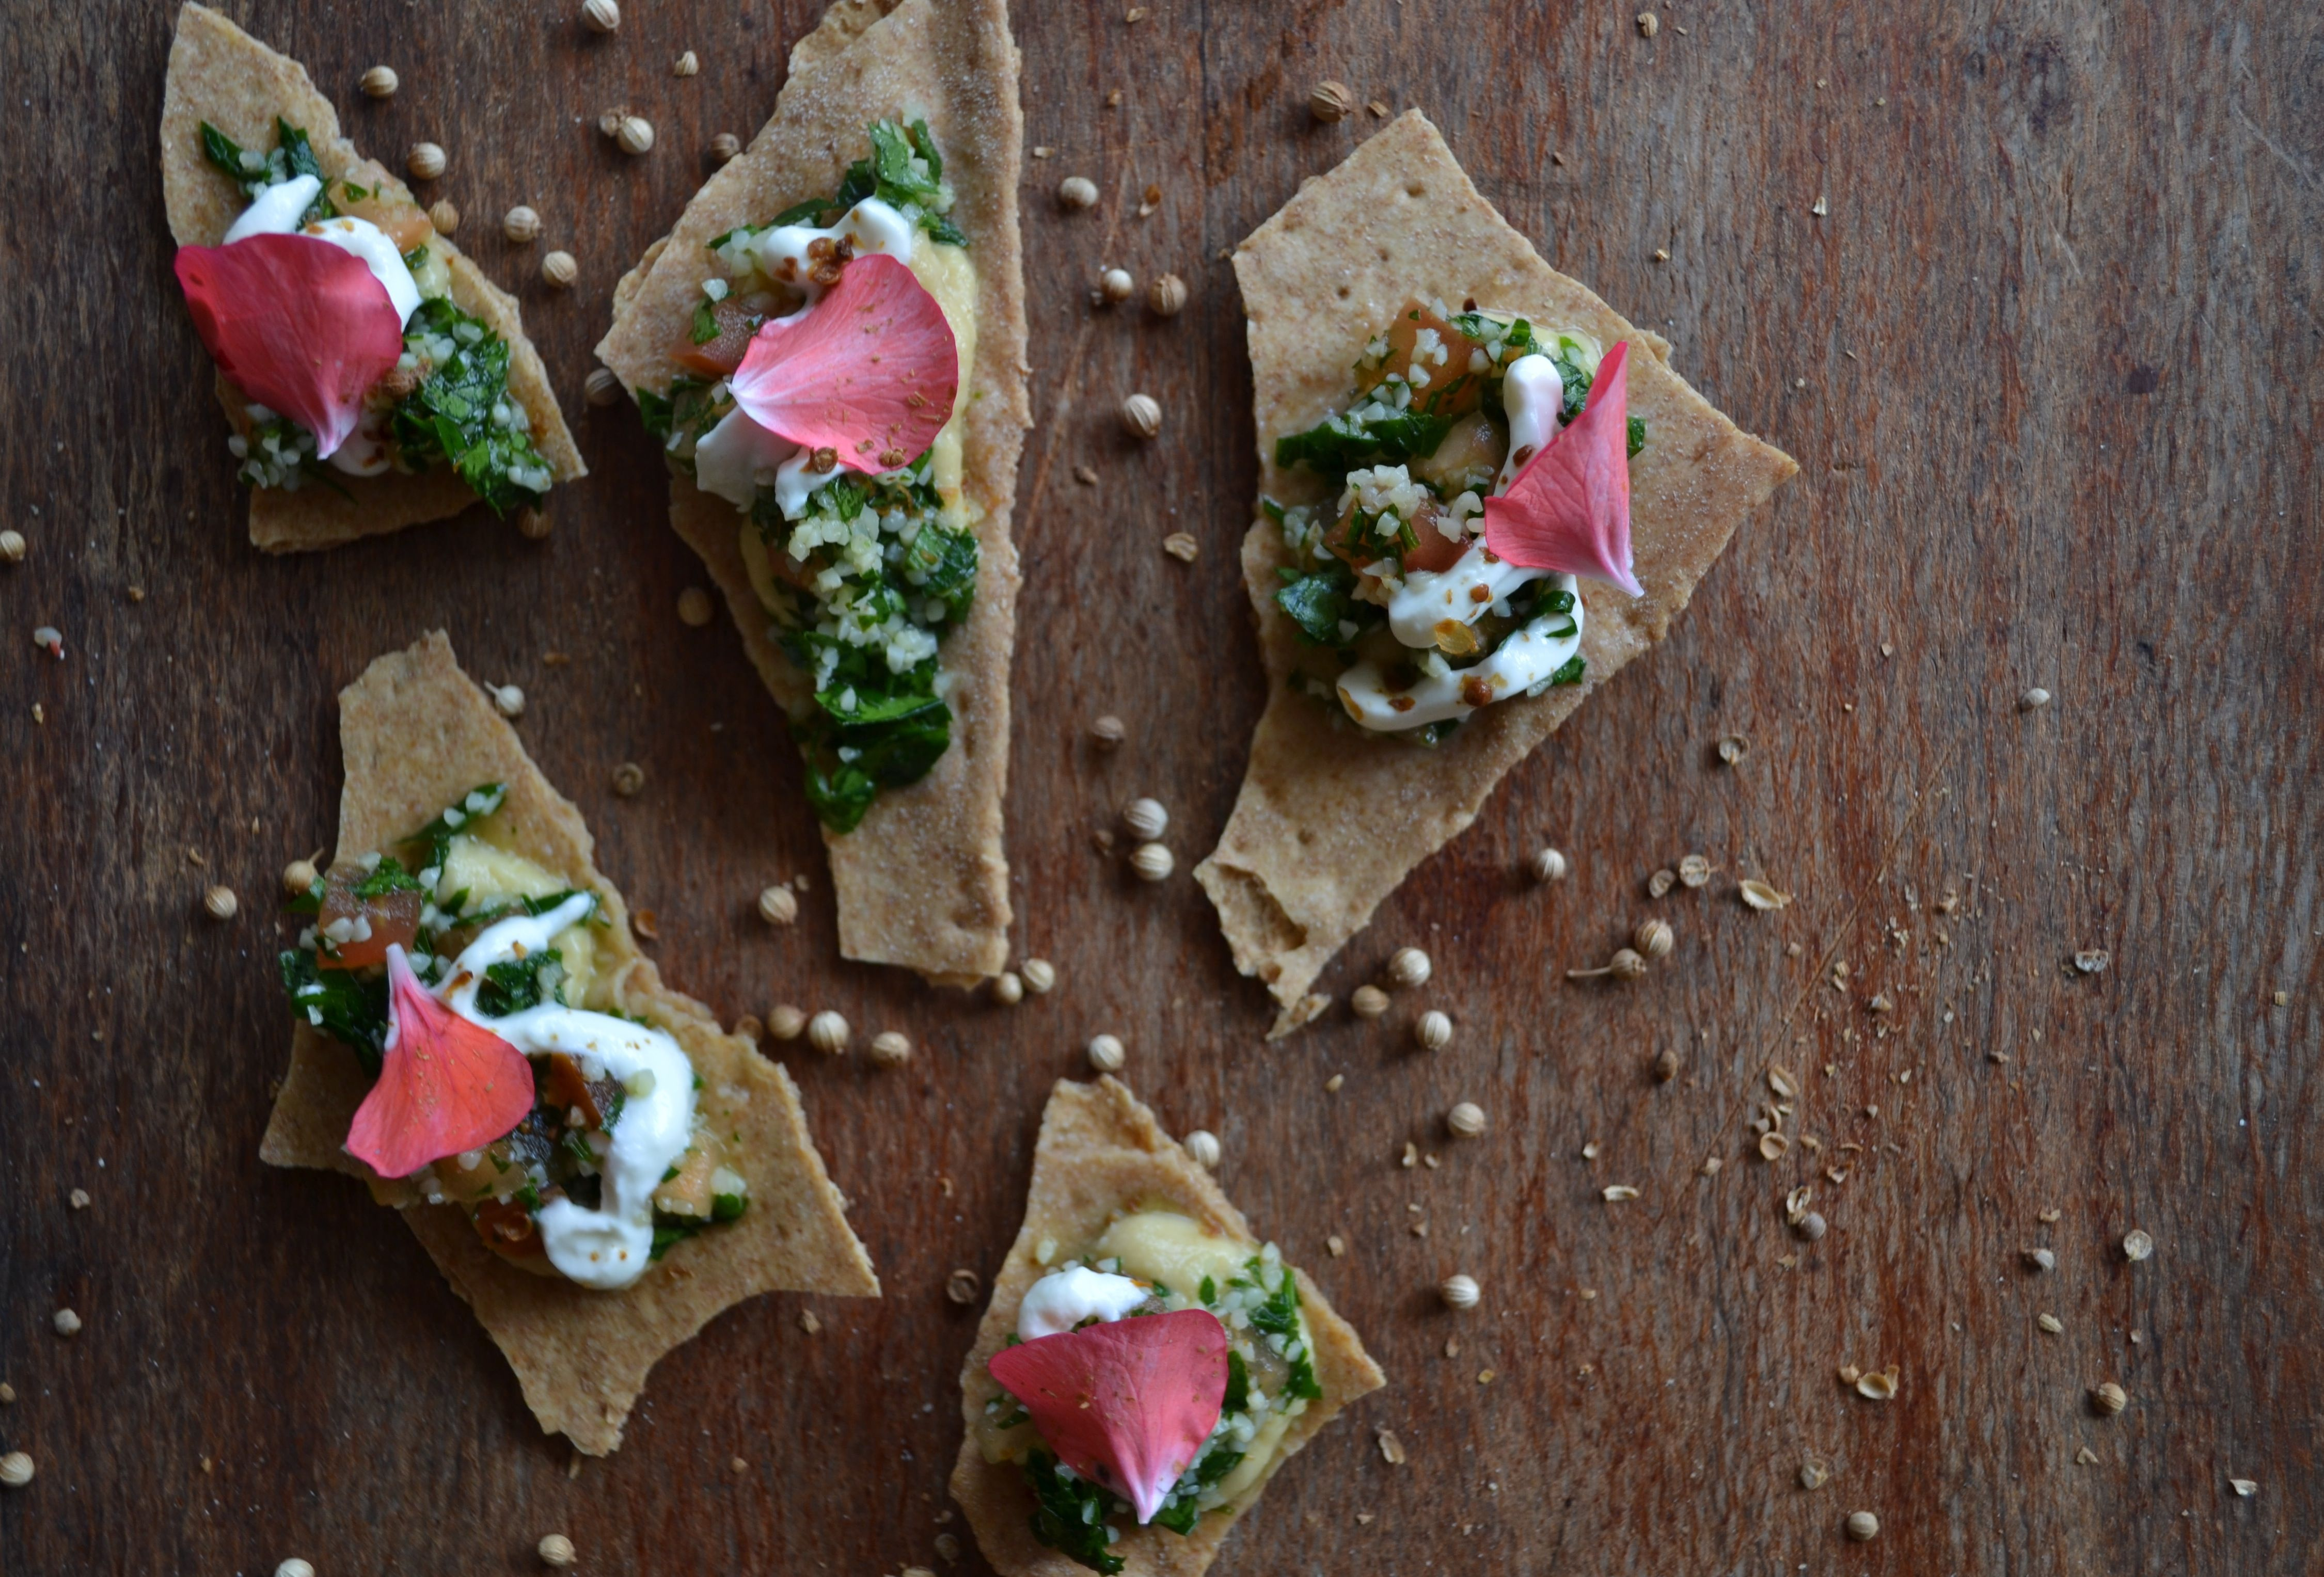 Don't Cry over Spelt milk - Coriander seed crisps with tabour, chickpea smash, labneh & geranium petals. A Collaboration between Kate Olsson @heytucker & HealthyBYTe. Image by Camilla Anderson